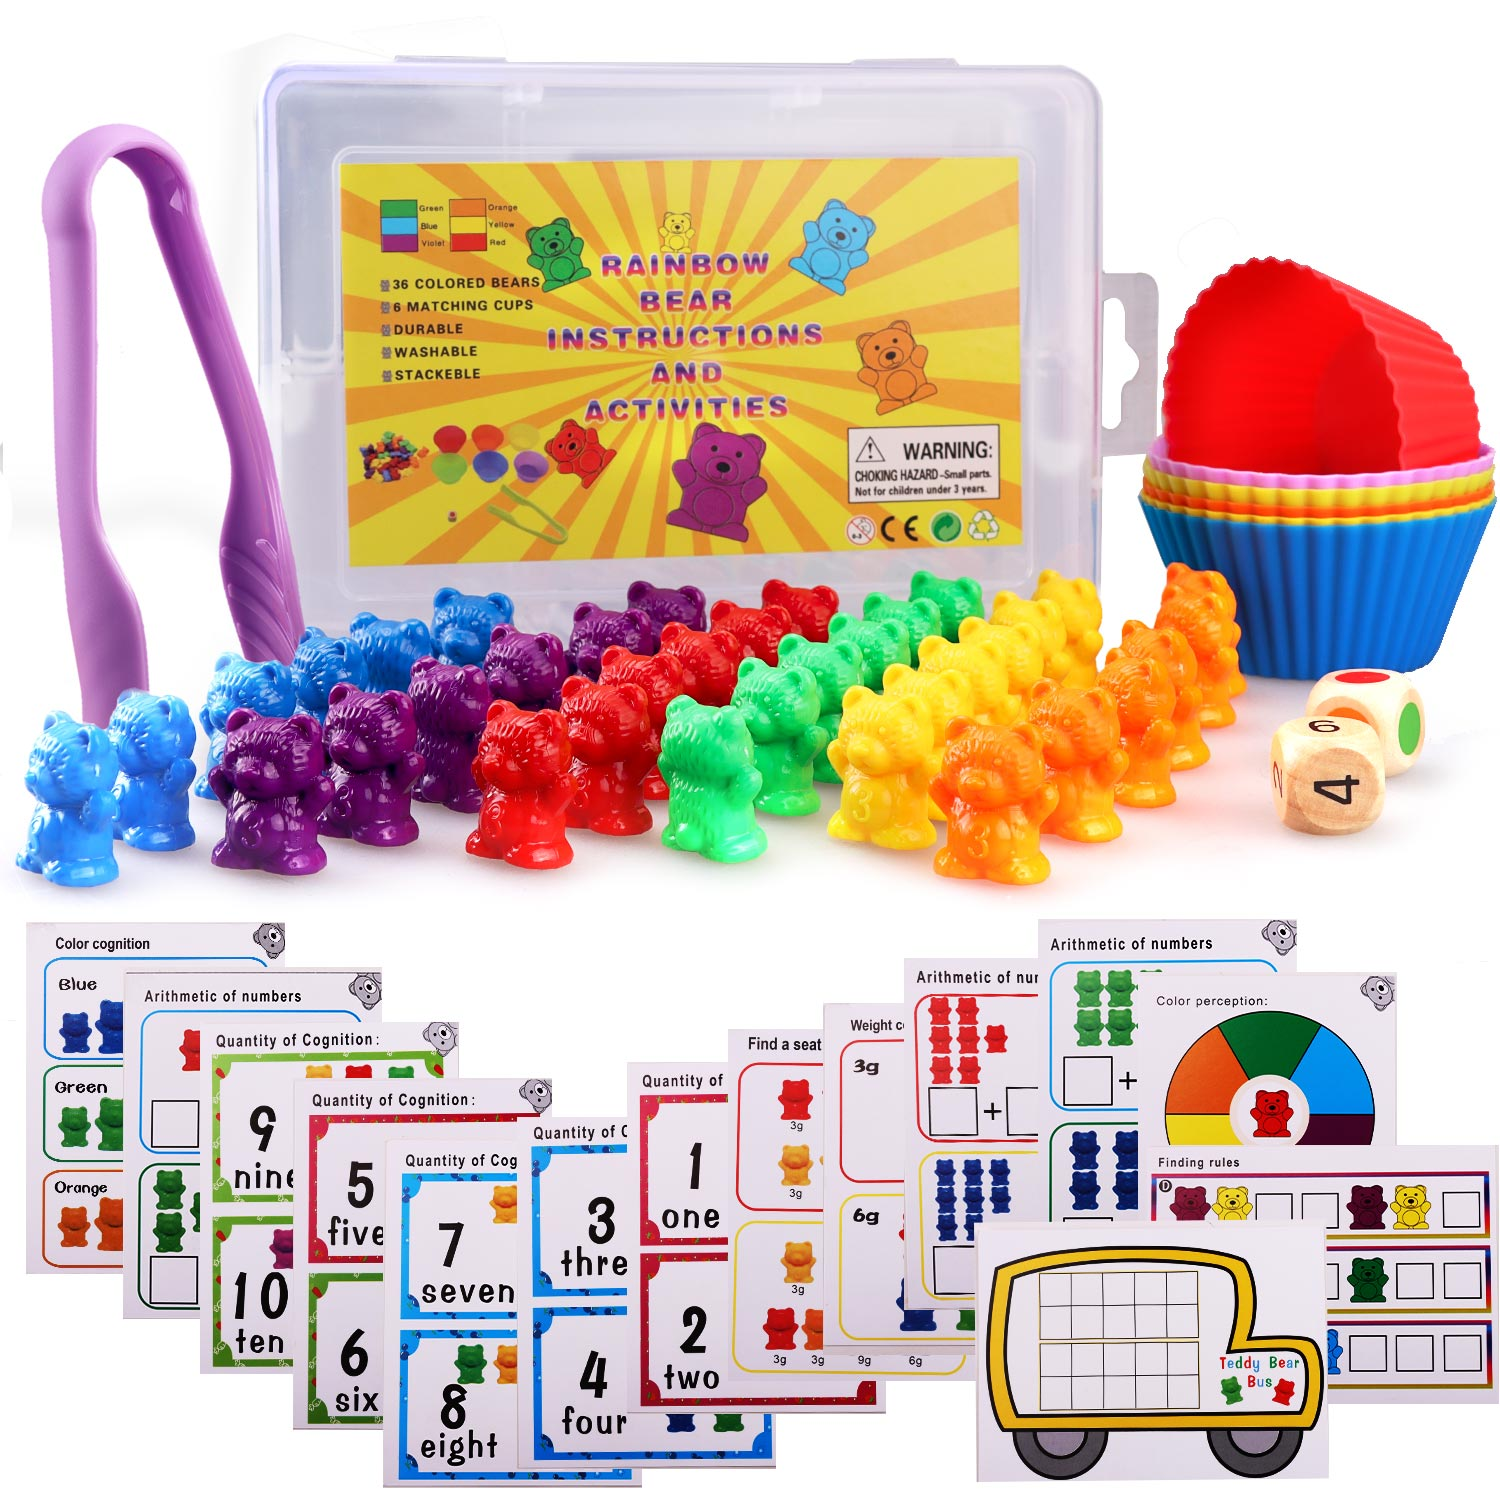 62pcs Counting Bears Matching Color Sorting Kit Learning Math Educational Toys for Toddlers Kids Homeschool Preschool Supplies